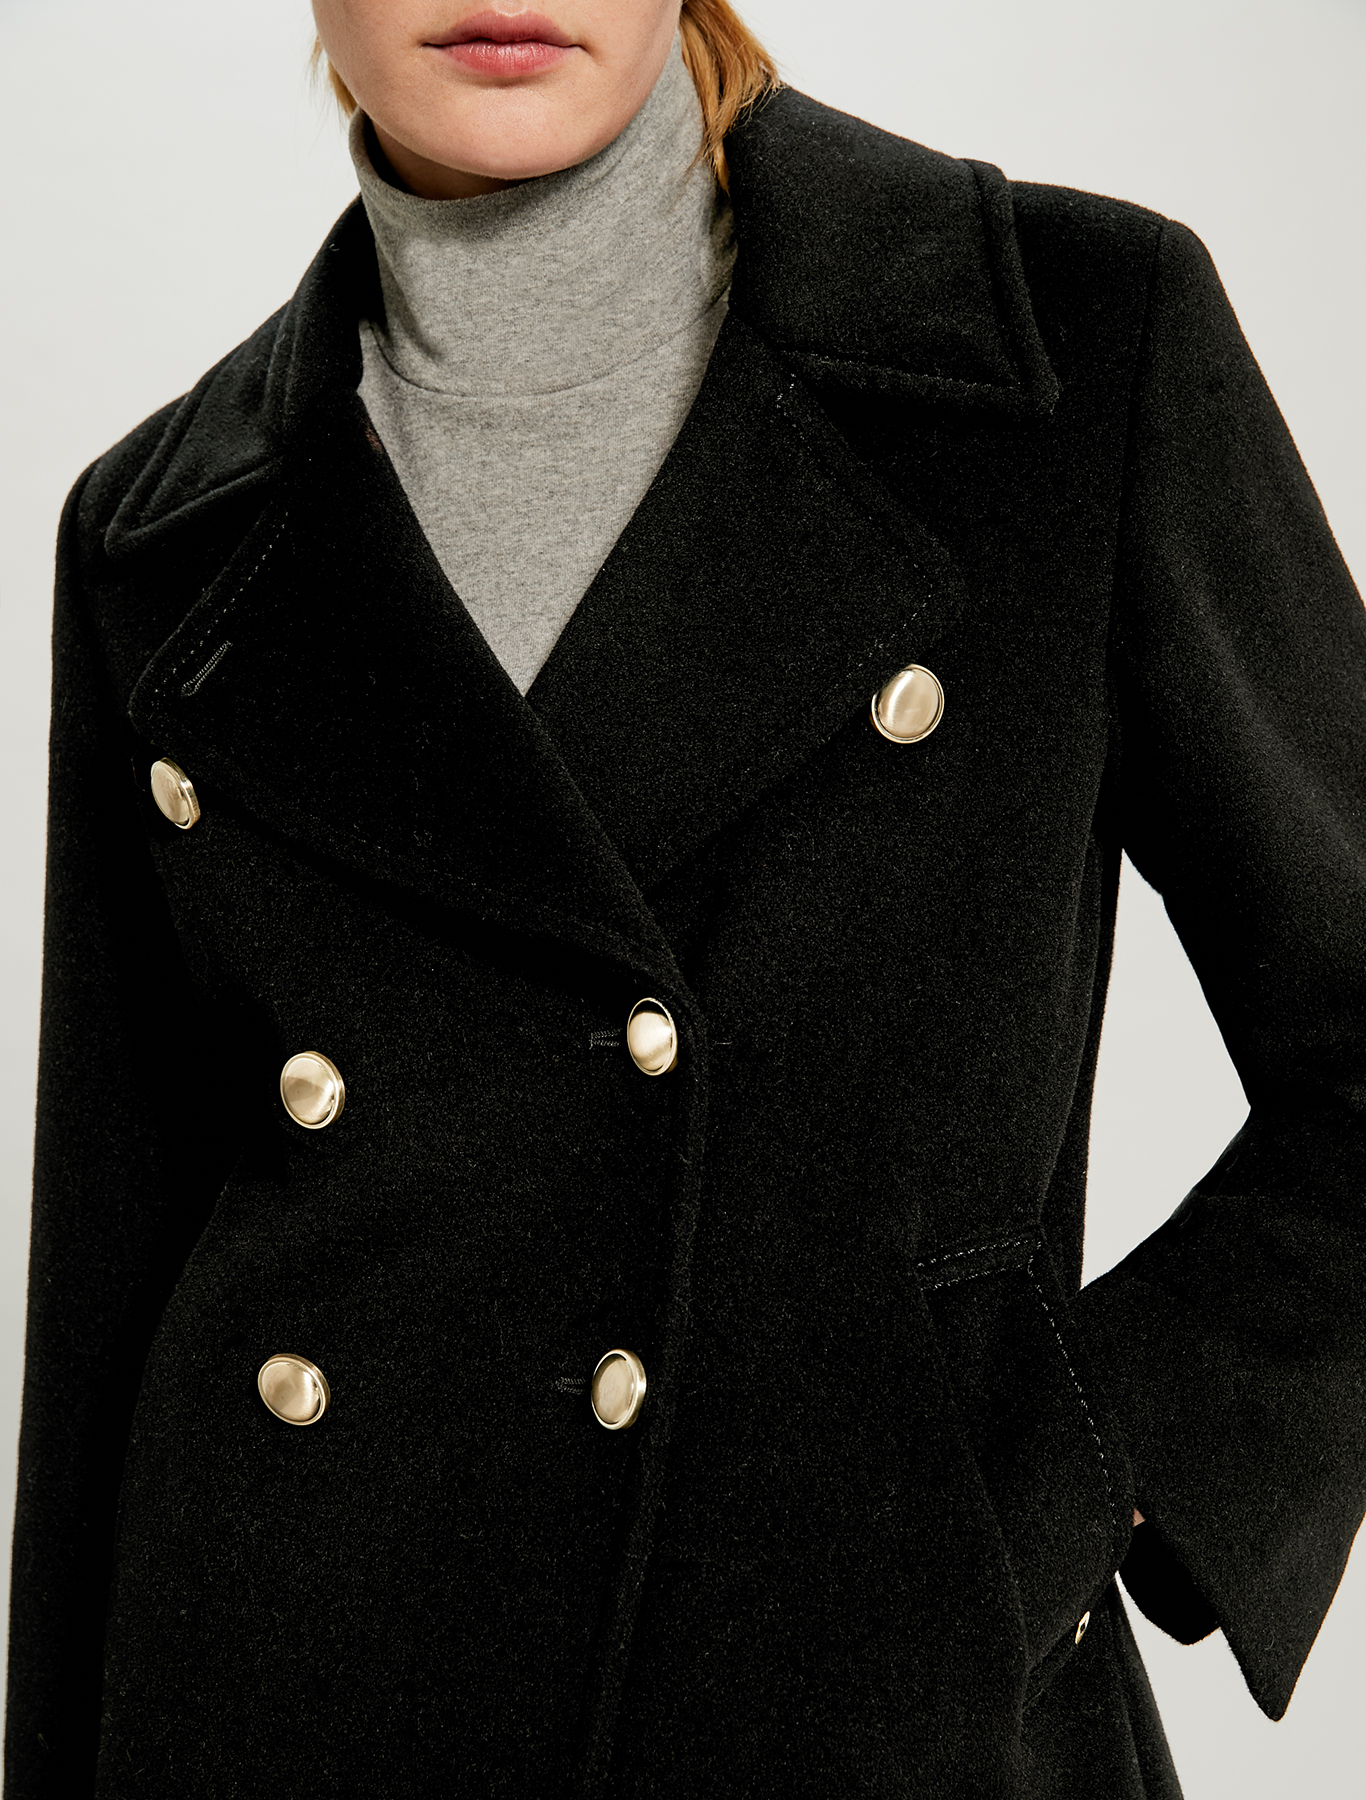 Pure wool pea coat - black - pennyblack